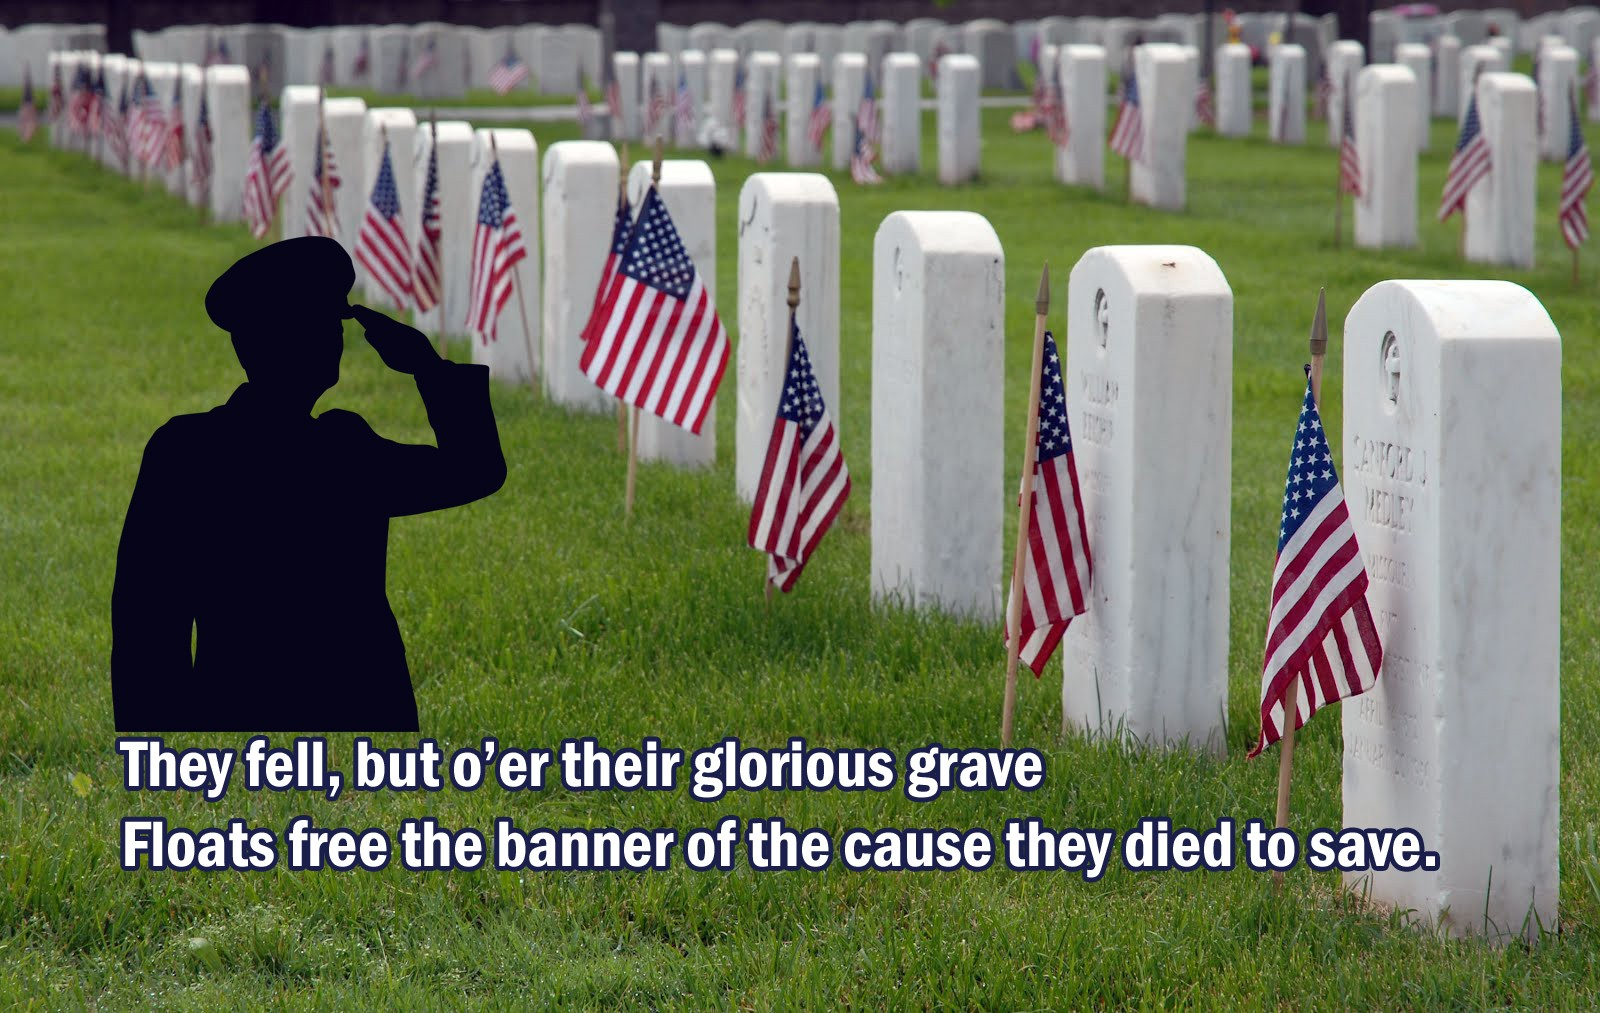 Quotes For Memorial Day